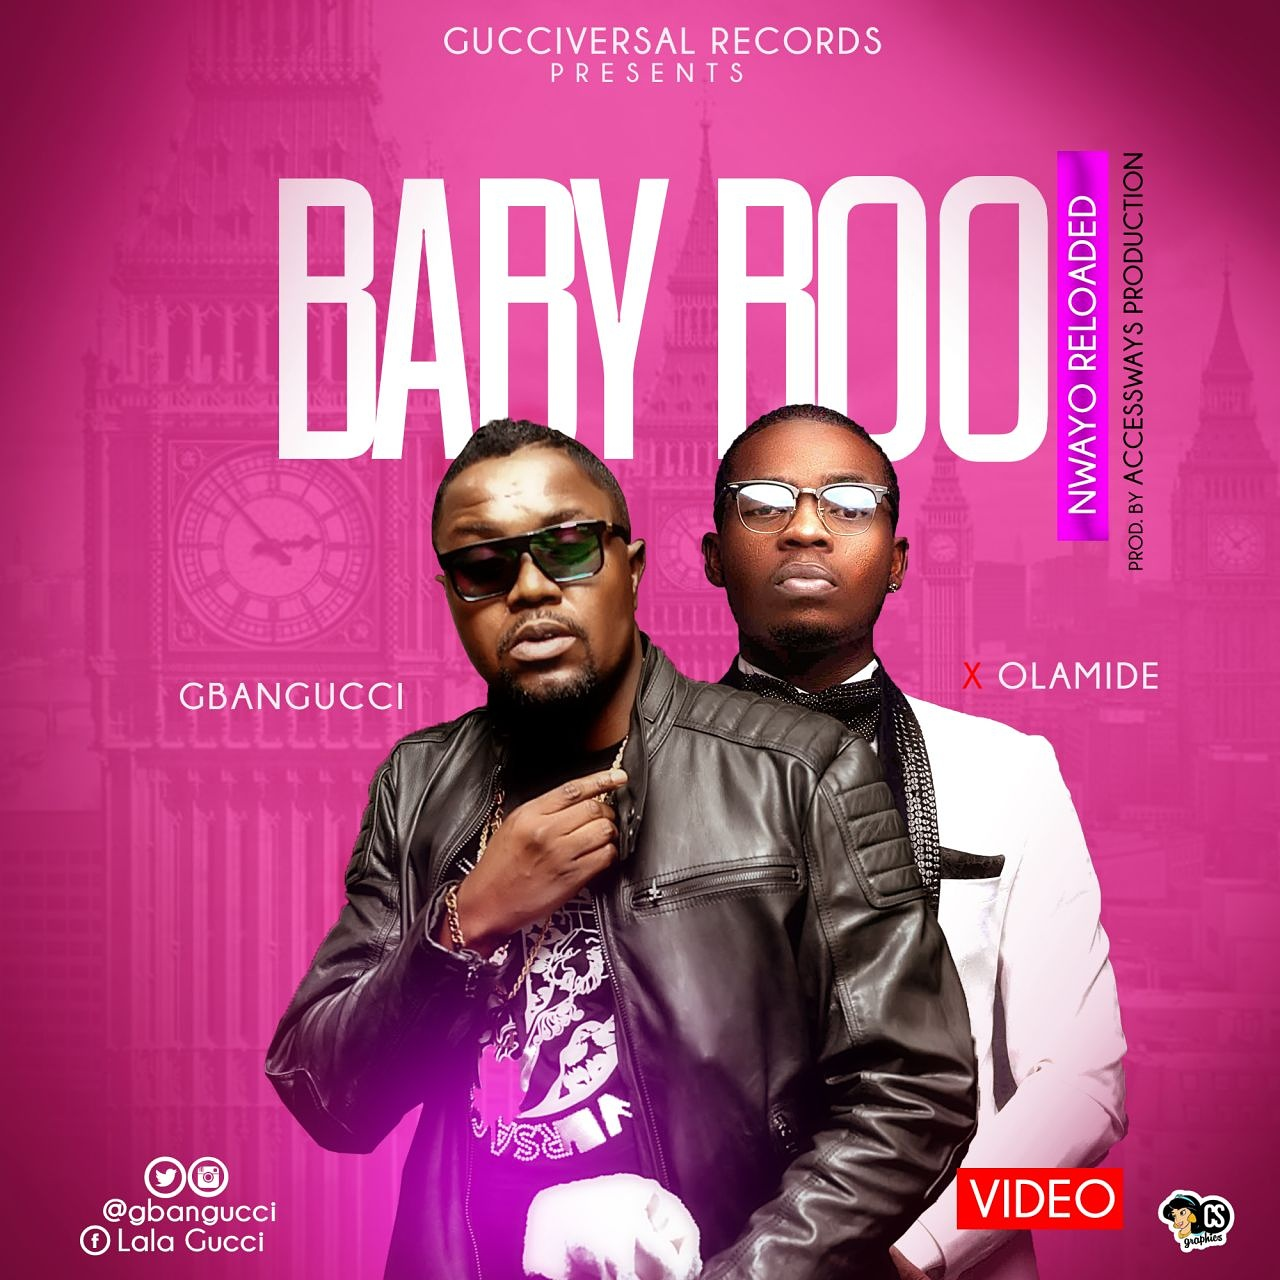 VIDEO: Gbangucci ft. Olamide – Baby Boo Nwayo Reloaded